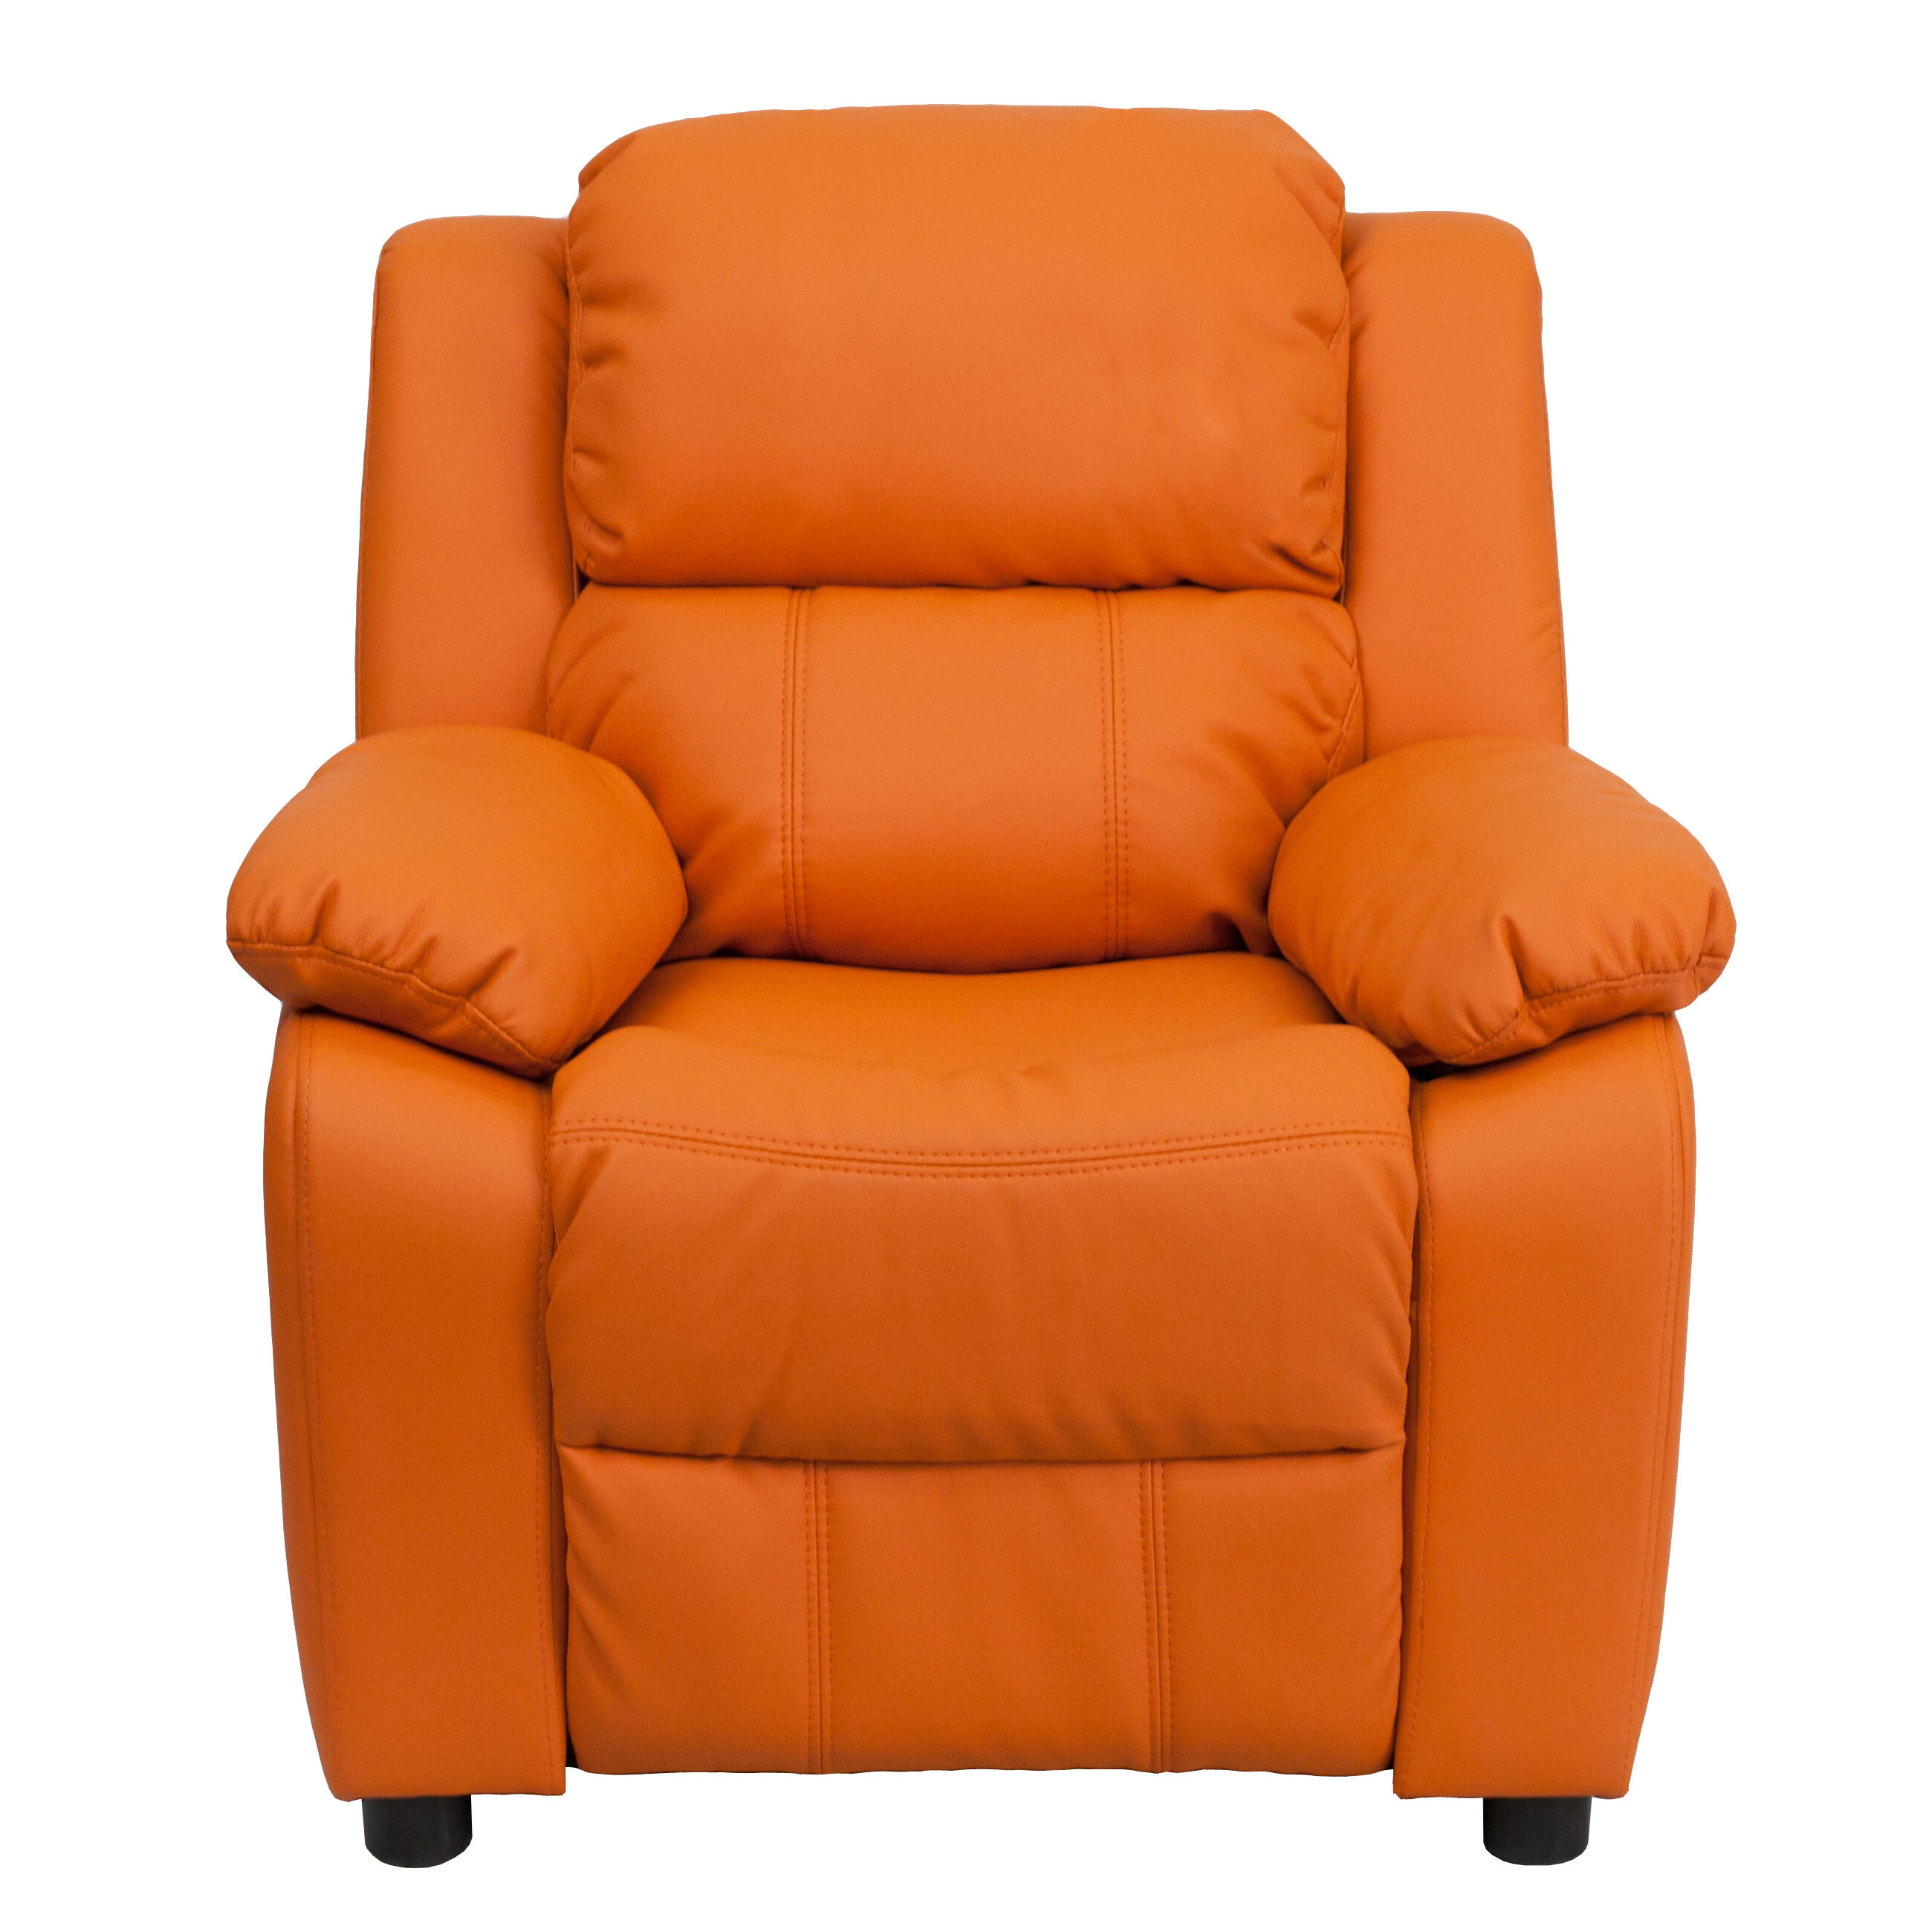 Our Deluxe Padded Contemporary Orange Vinyl Kids Recliner With Storage Arms  Is On Sale Now.